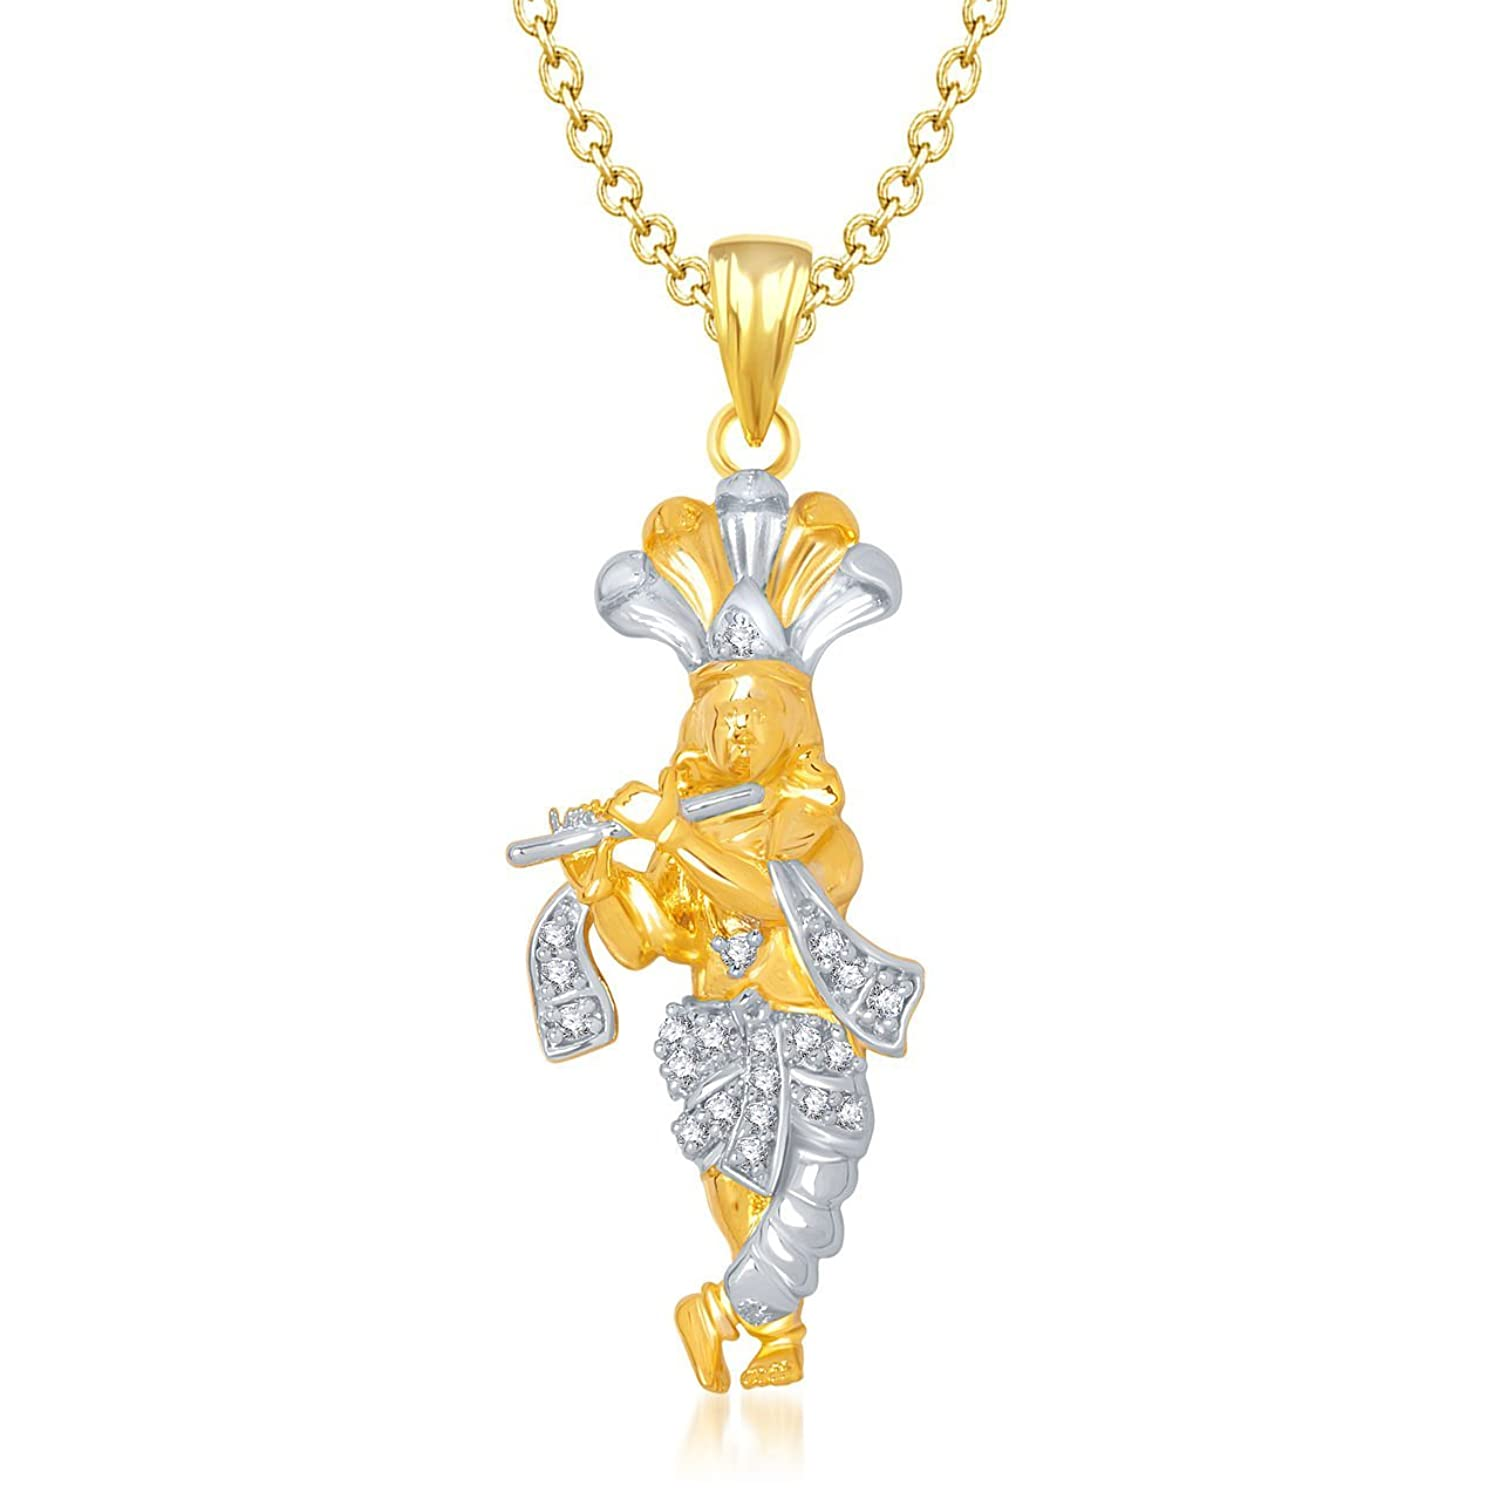 chain krishna american jewellery in amaal god pendant amazon diamond cz dp for women men plated with gold